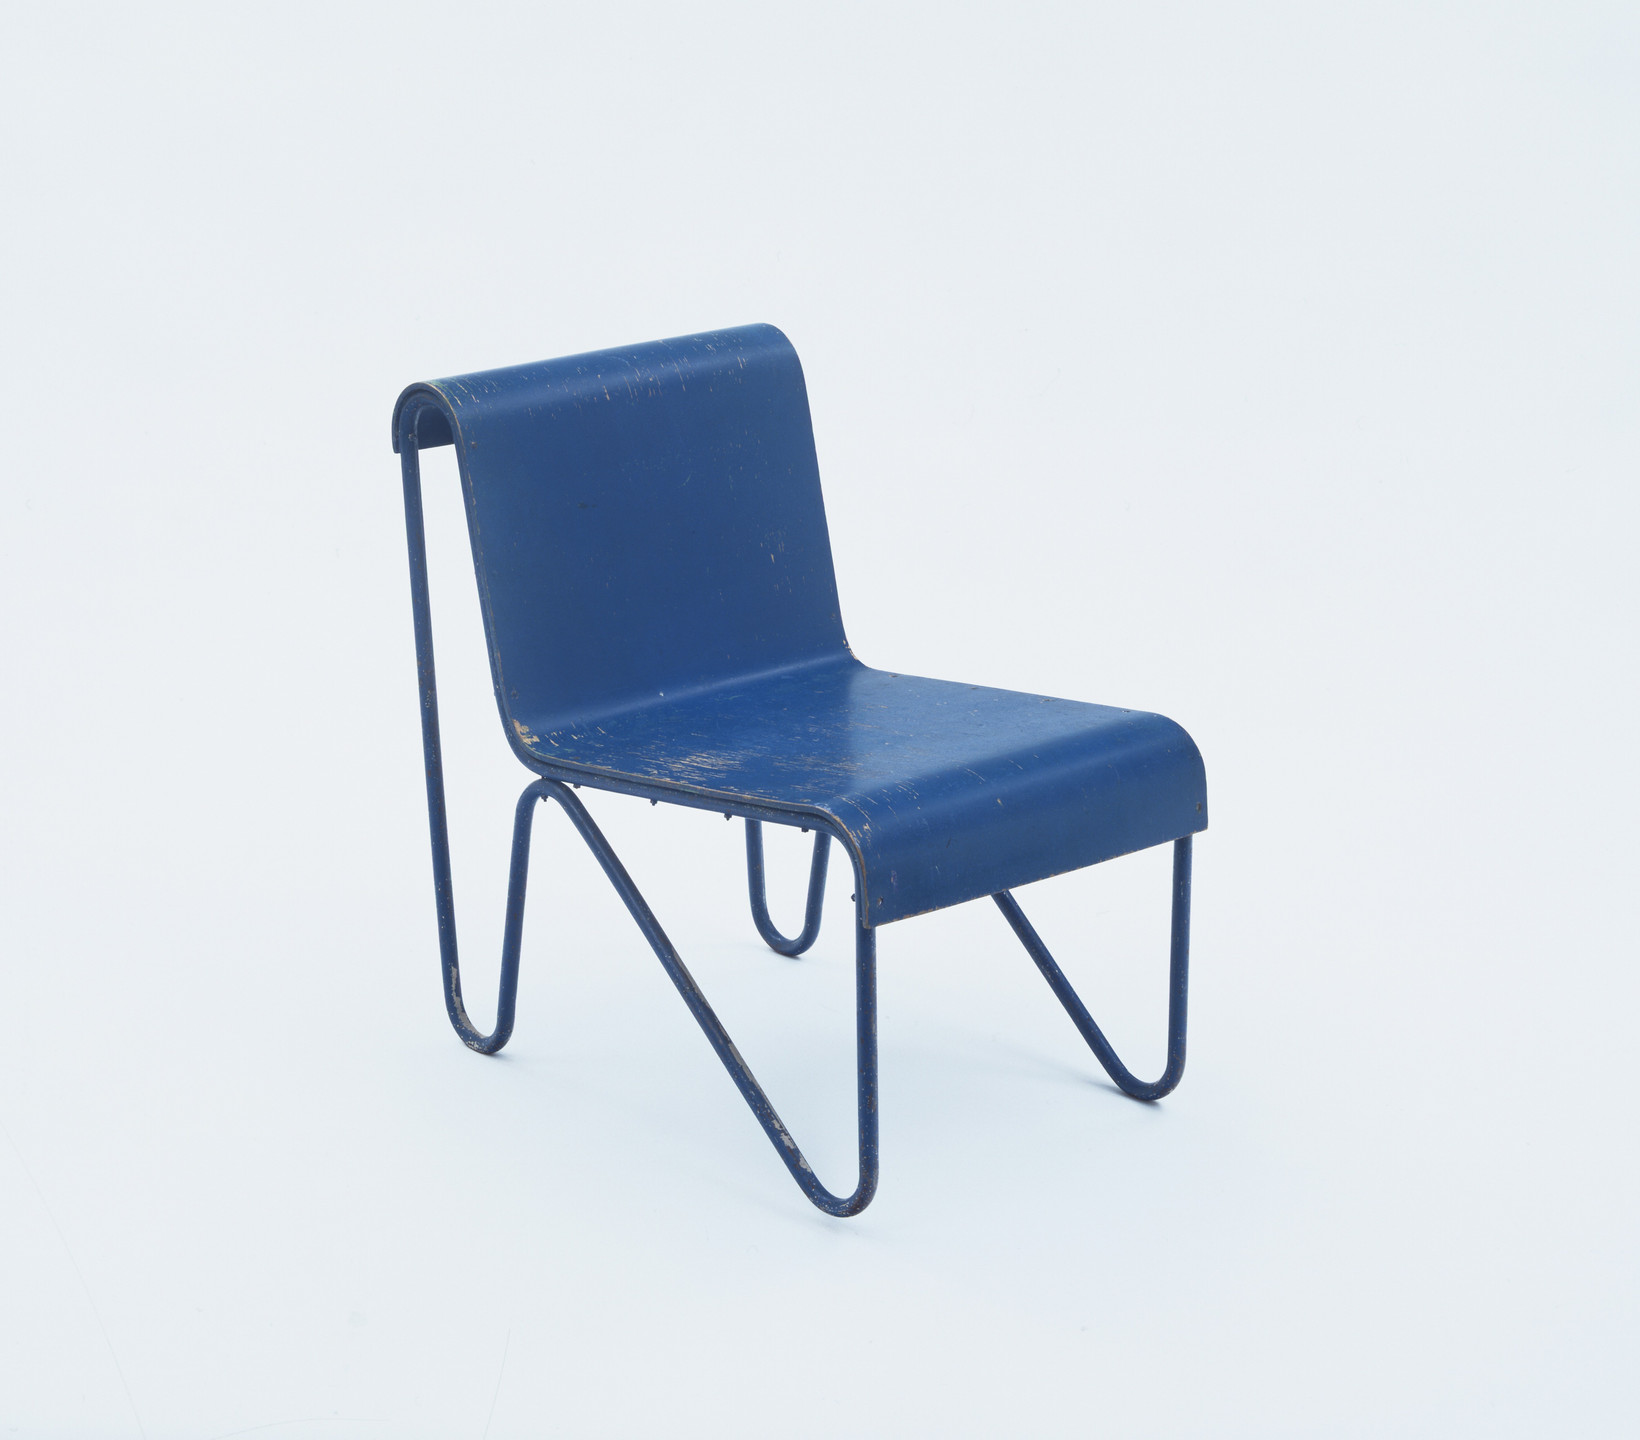 Gerrit Rietveld. Beugel (Bow) Child's Chair. 1927–1930